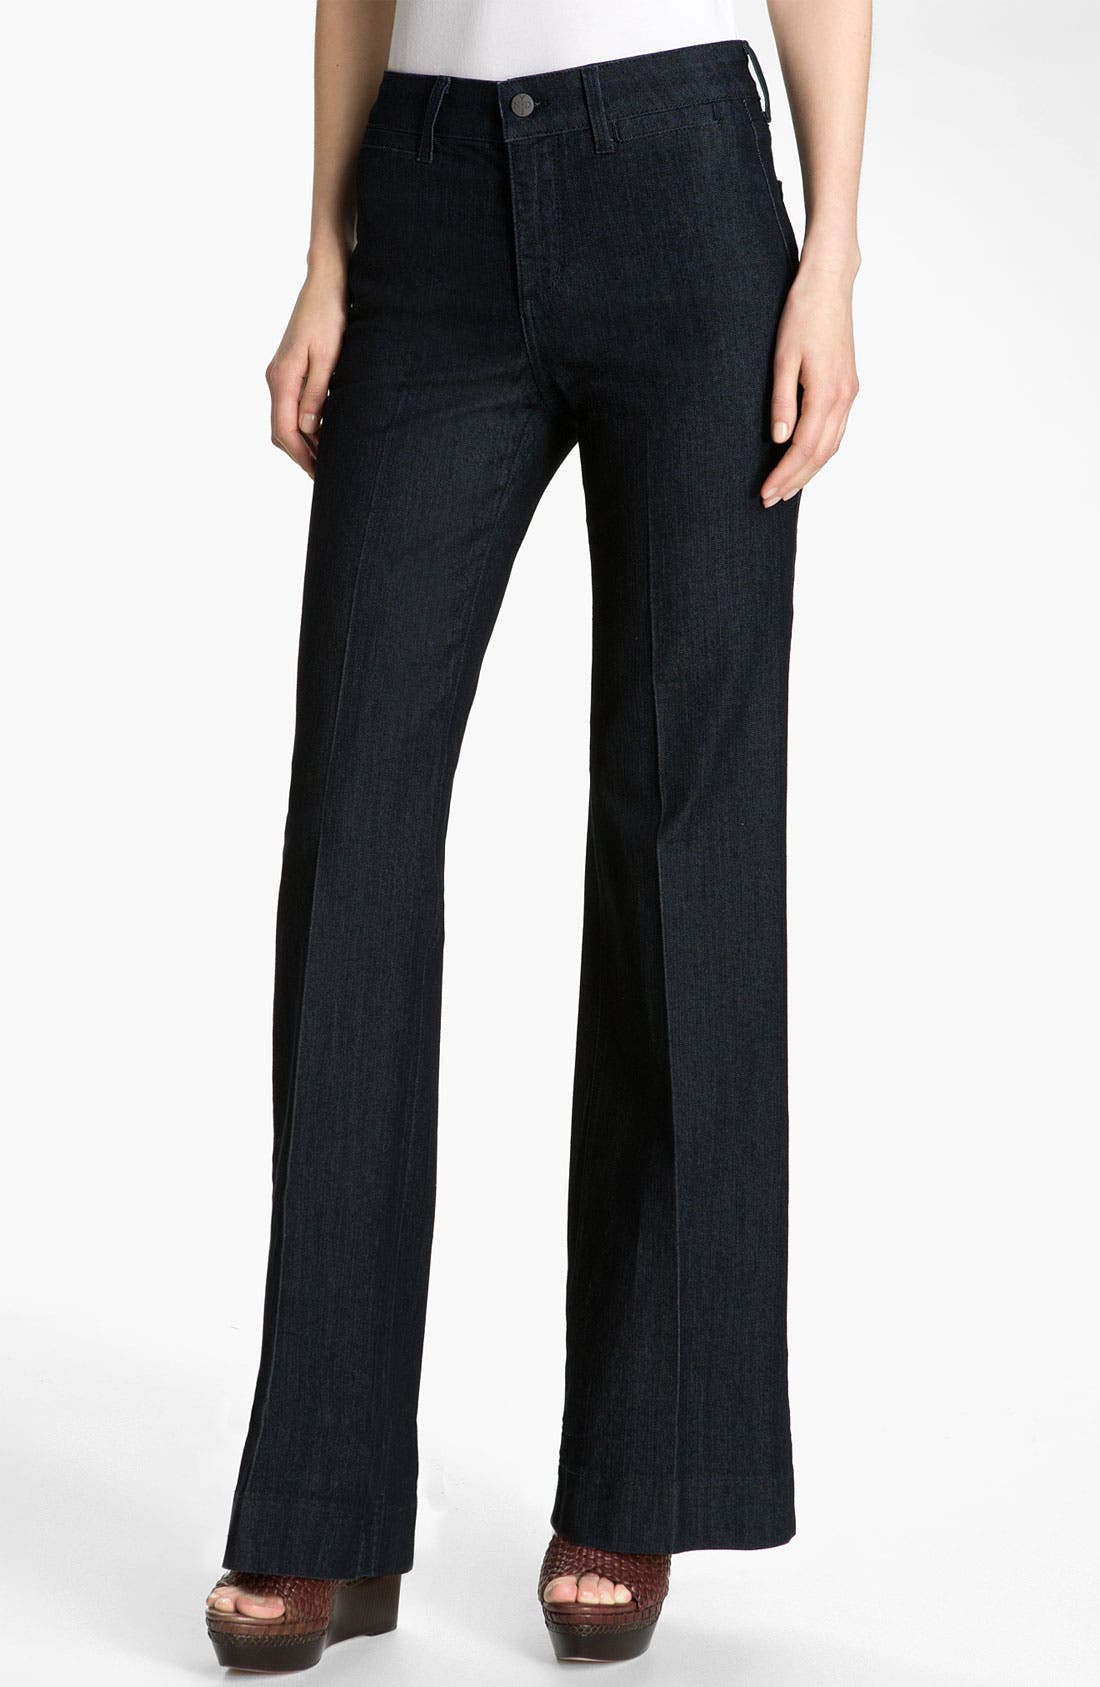 Alternate Image 1 Selected - NYDJ 'Greta' Trouser Jeans (Petite)